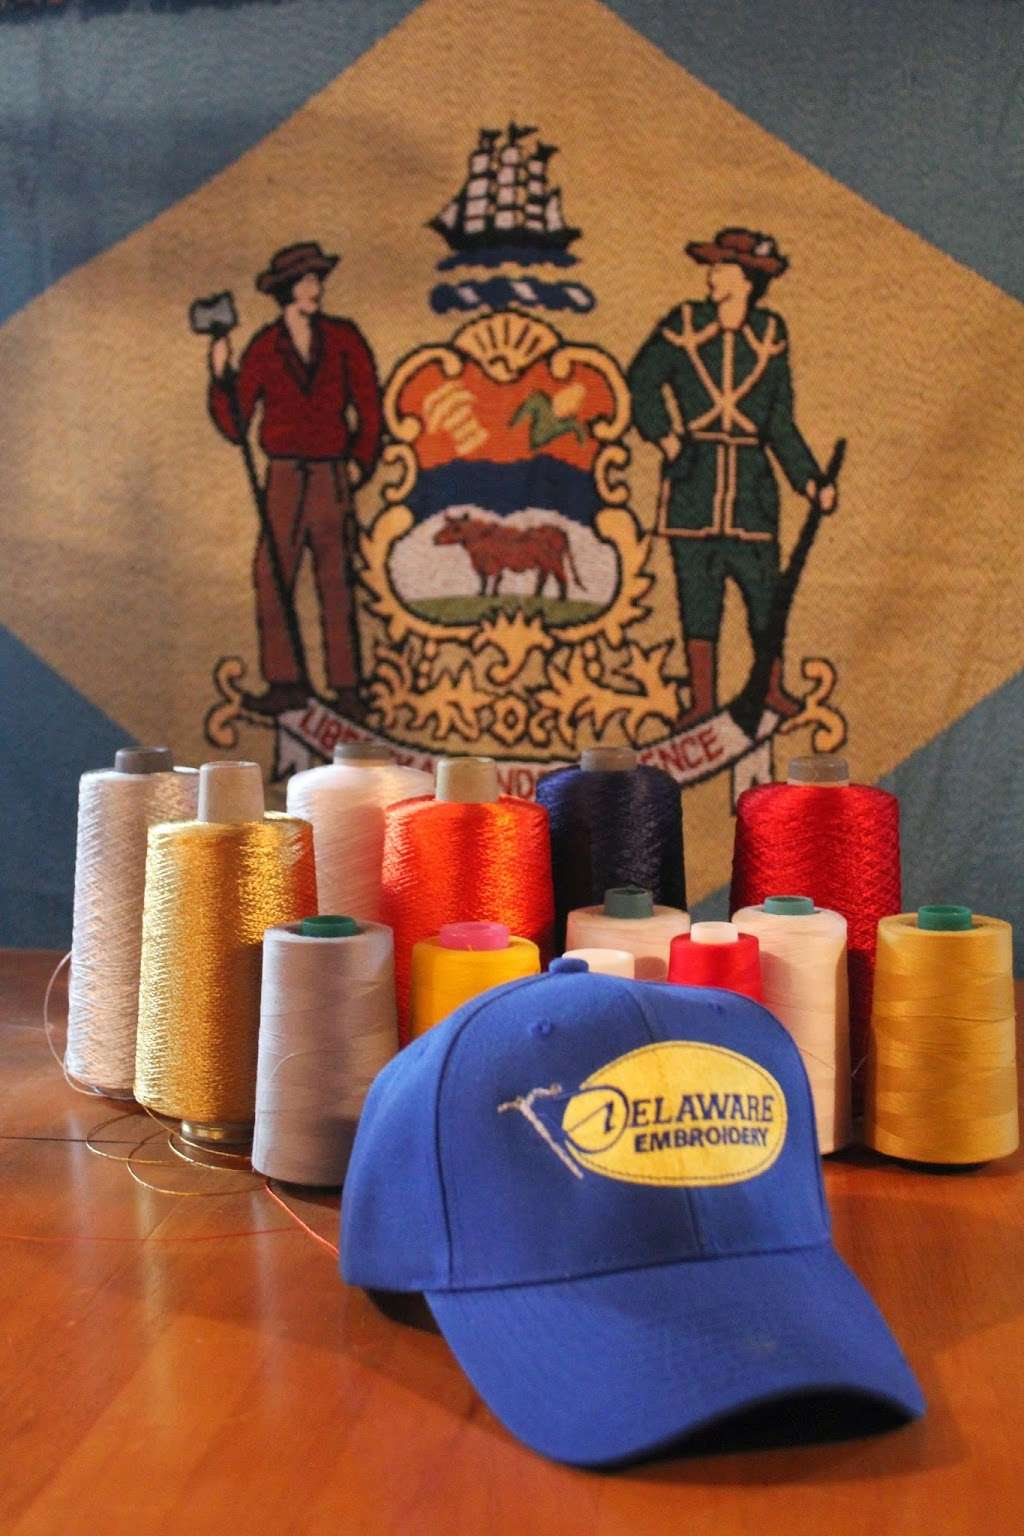 Delaware Embroidery - store  | Photo 1 of 1 | Address: 588 Railroad Ave, Townsend, DE 19734, USA | Phone: (302) 378-3292